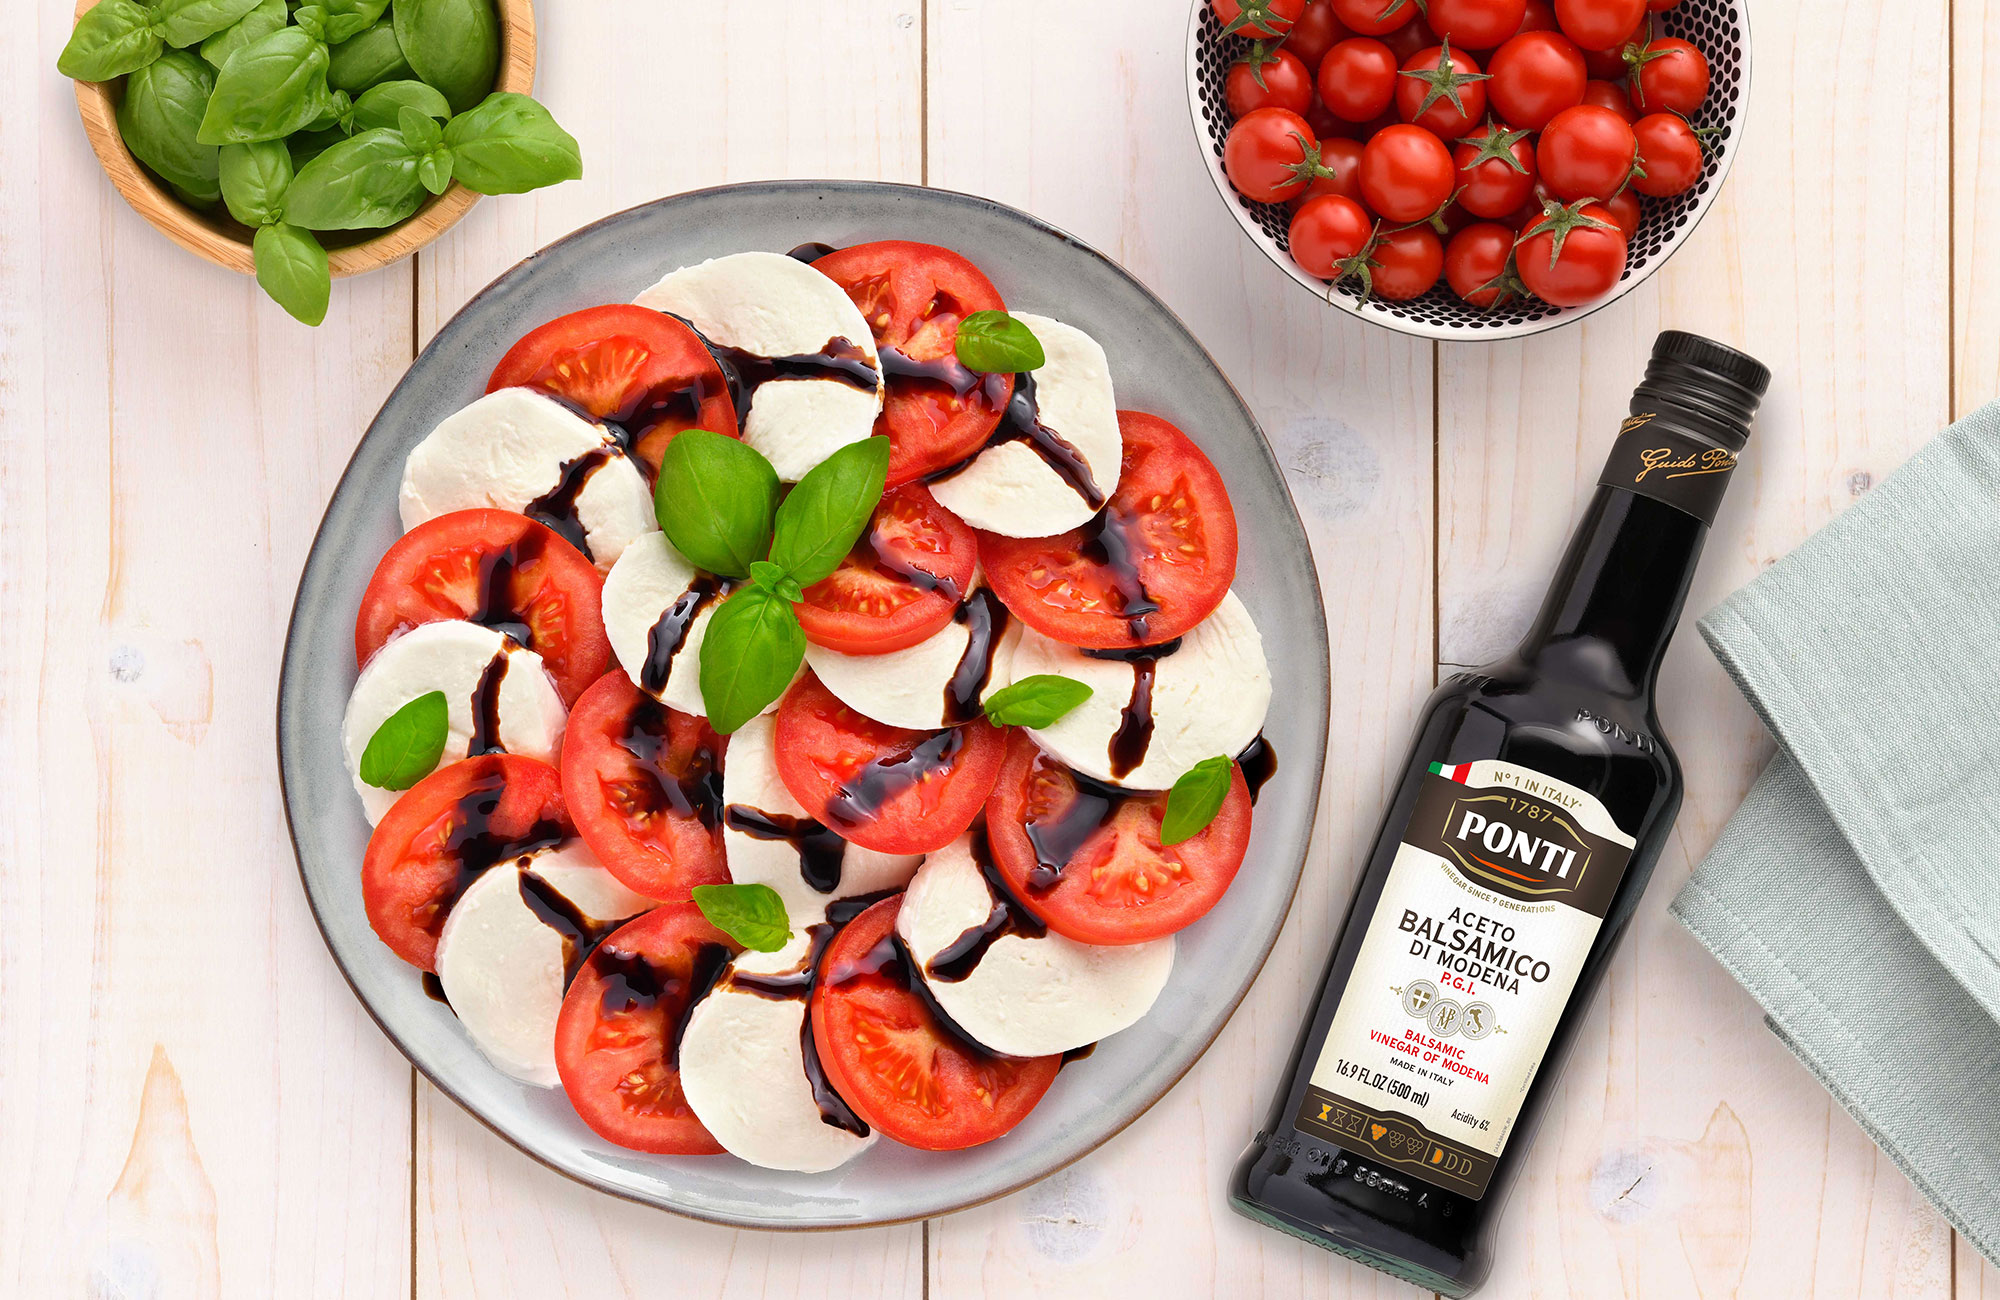 Caprese with Ponti Balsamic Vinegar of Modena P.G.I. - Ponti